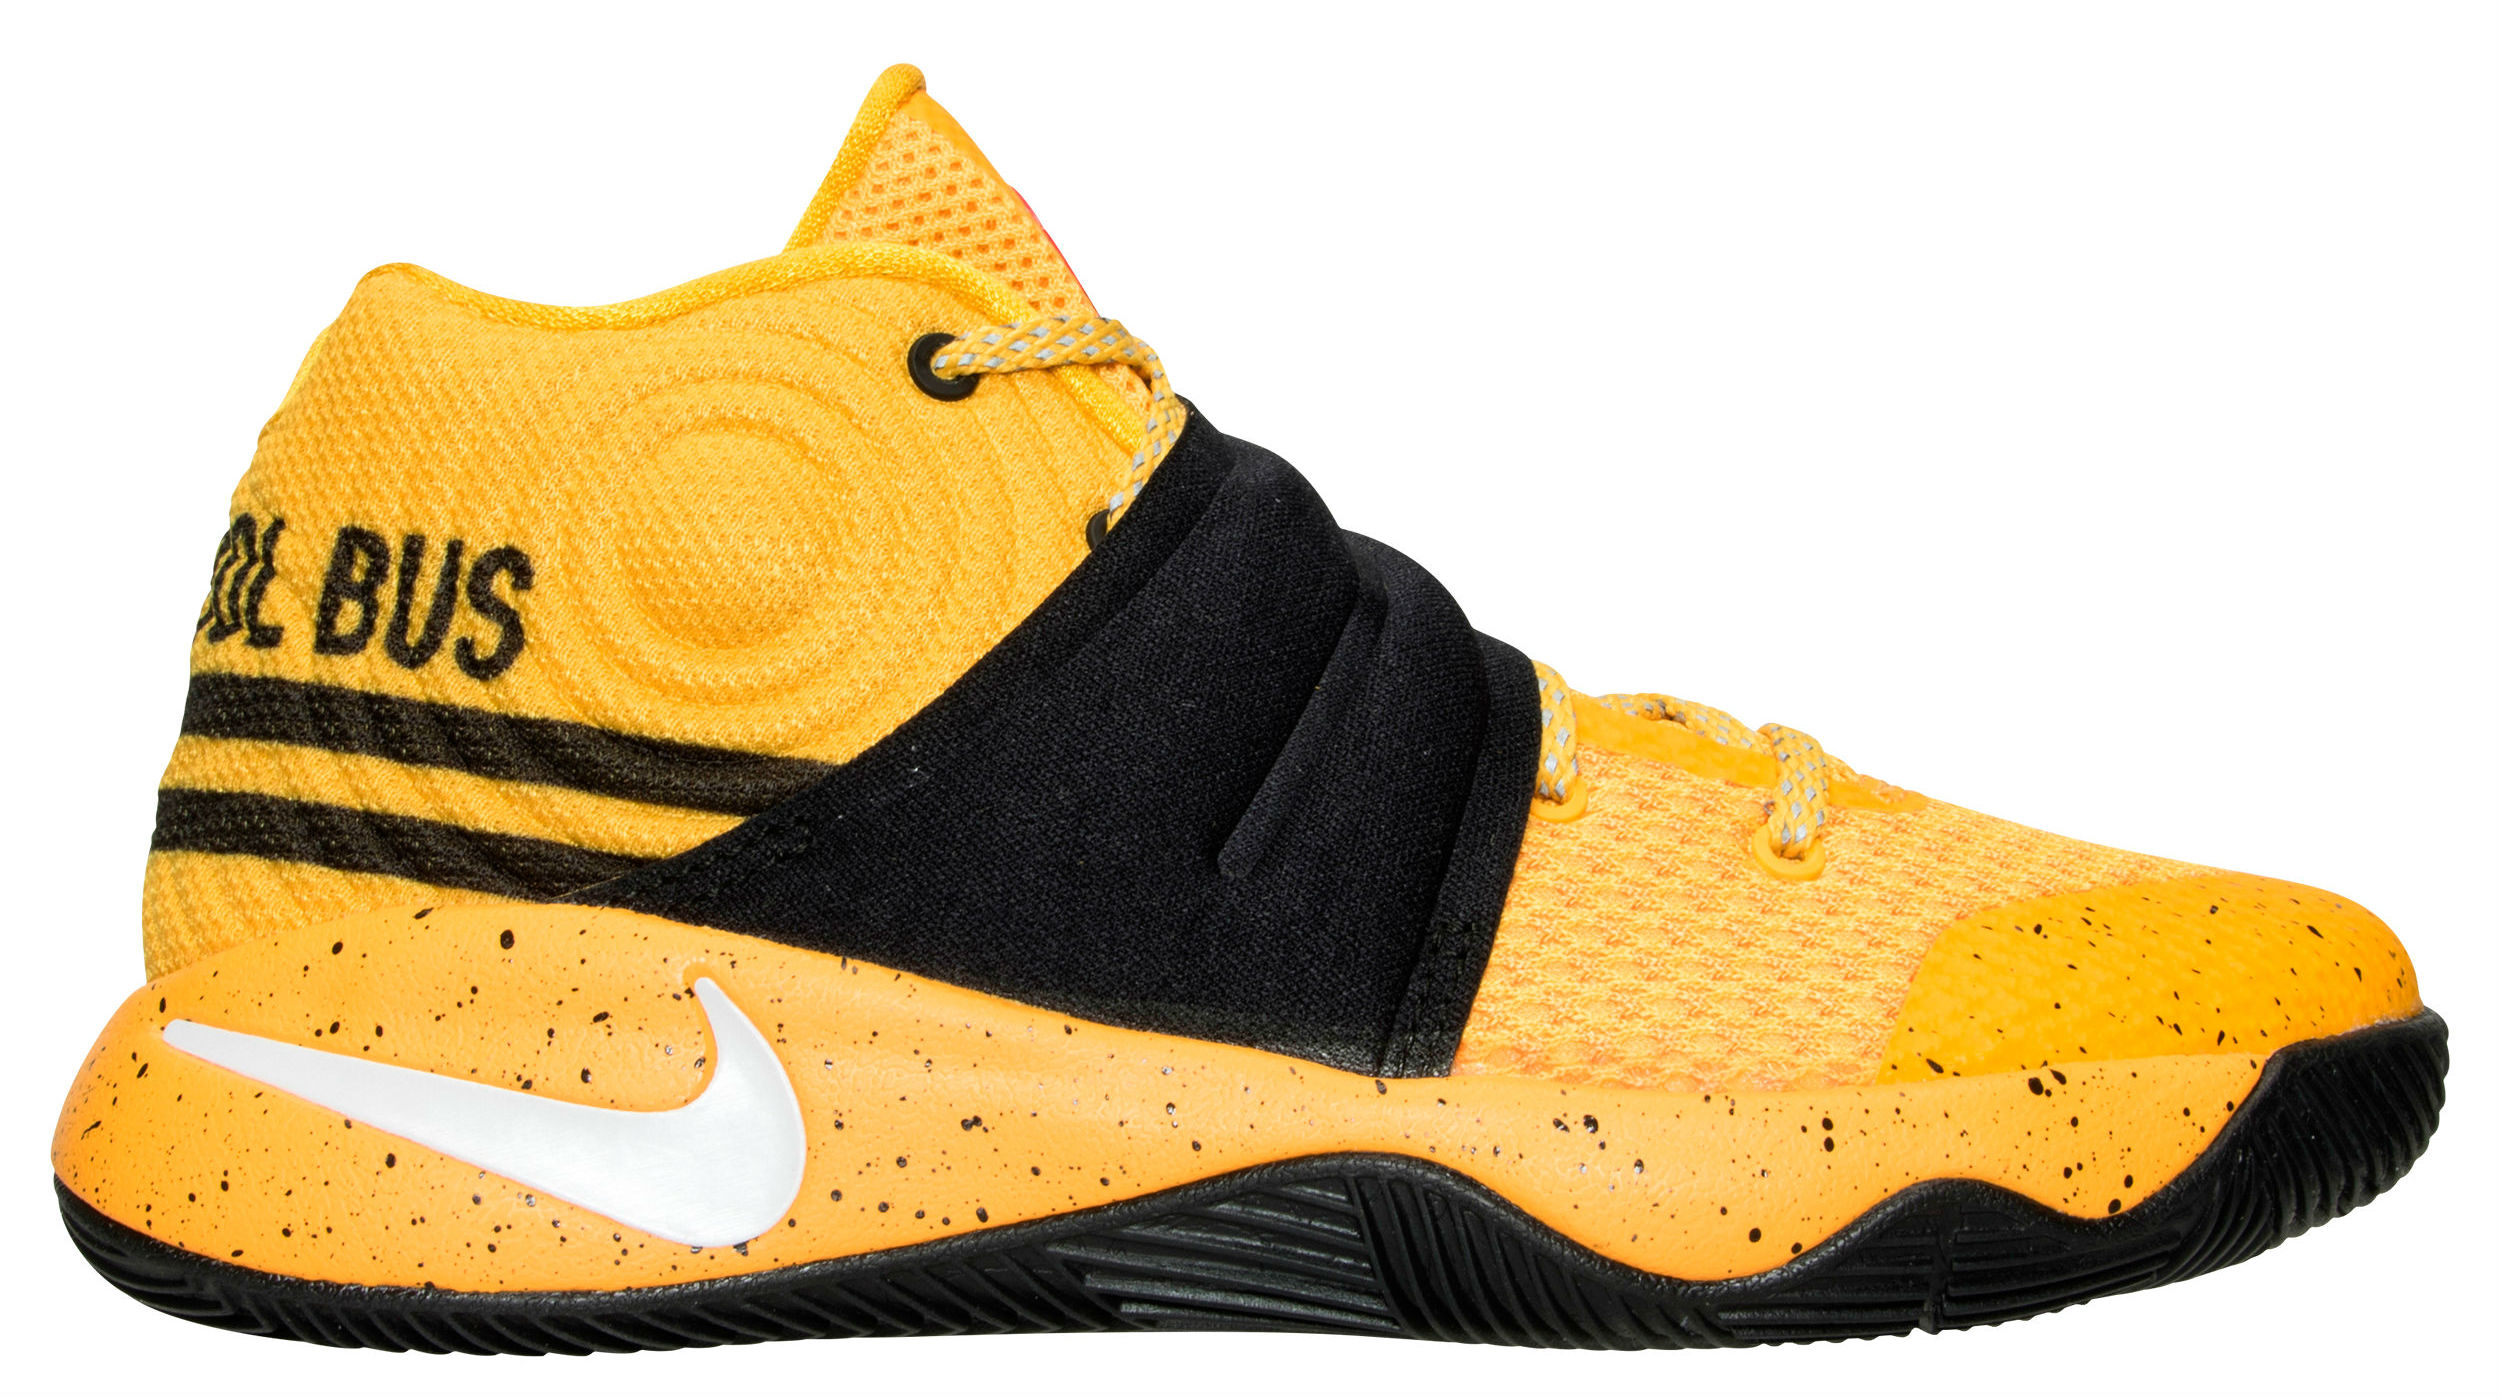 School Bus Kyrie 2 Release Date Side 827280-700